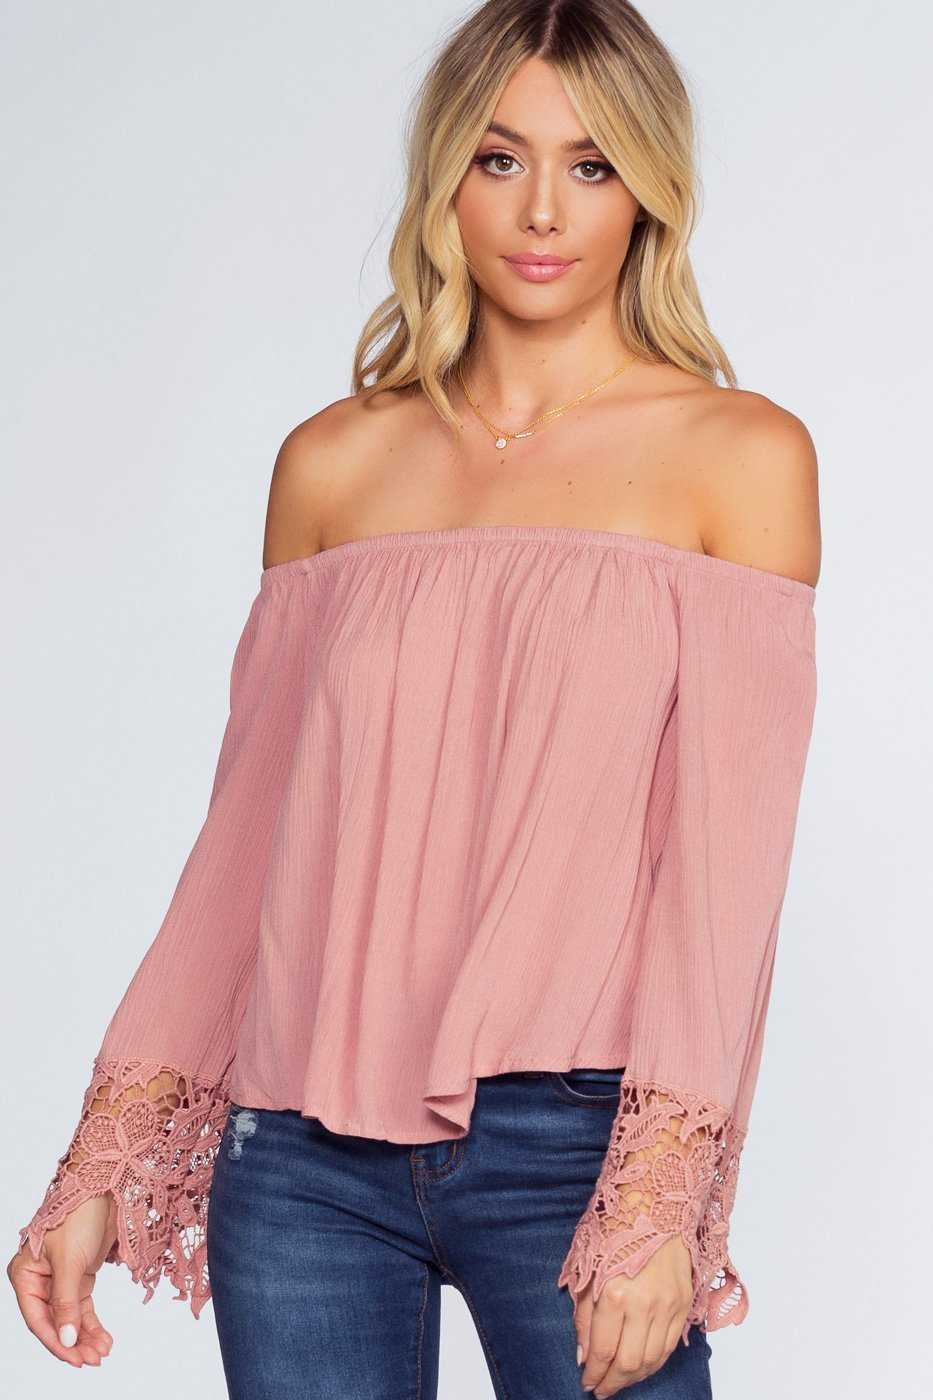 86372d1e7ffe8 Lexi Off The Shoulder Top - Mauve